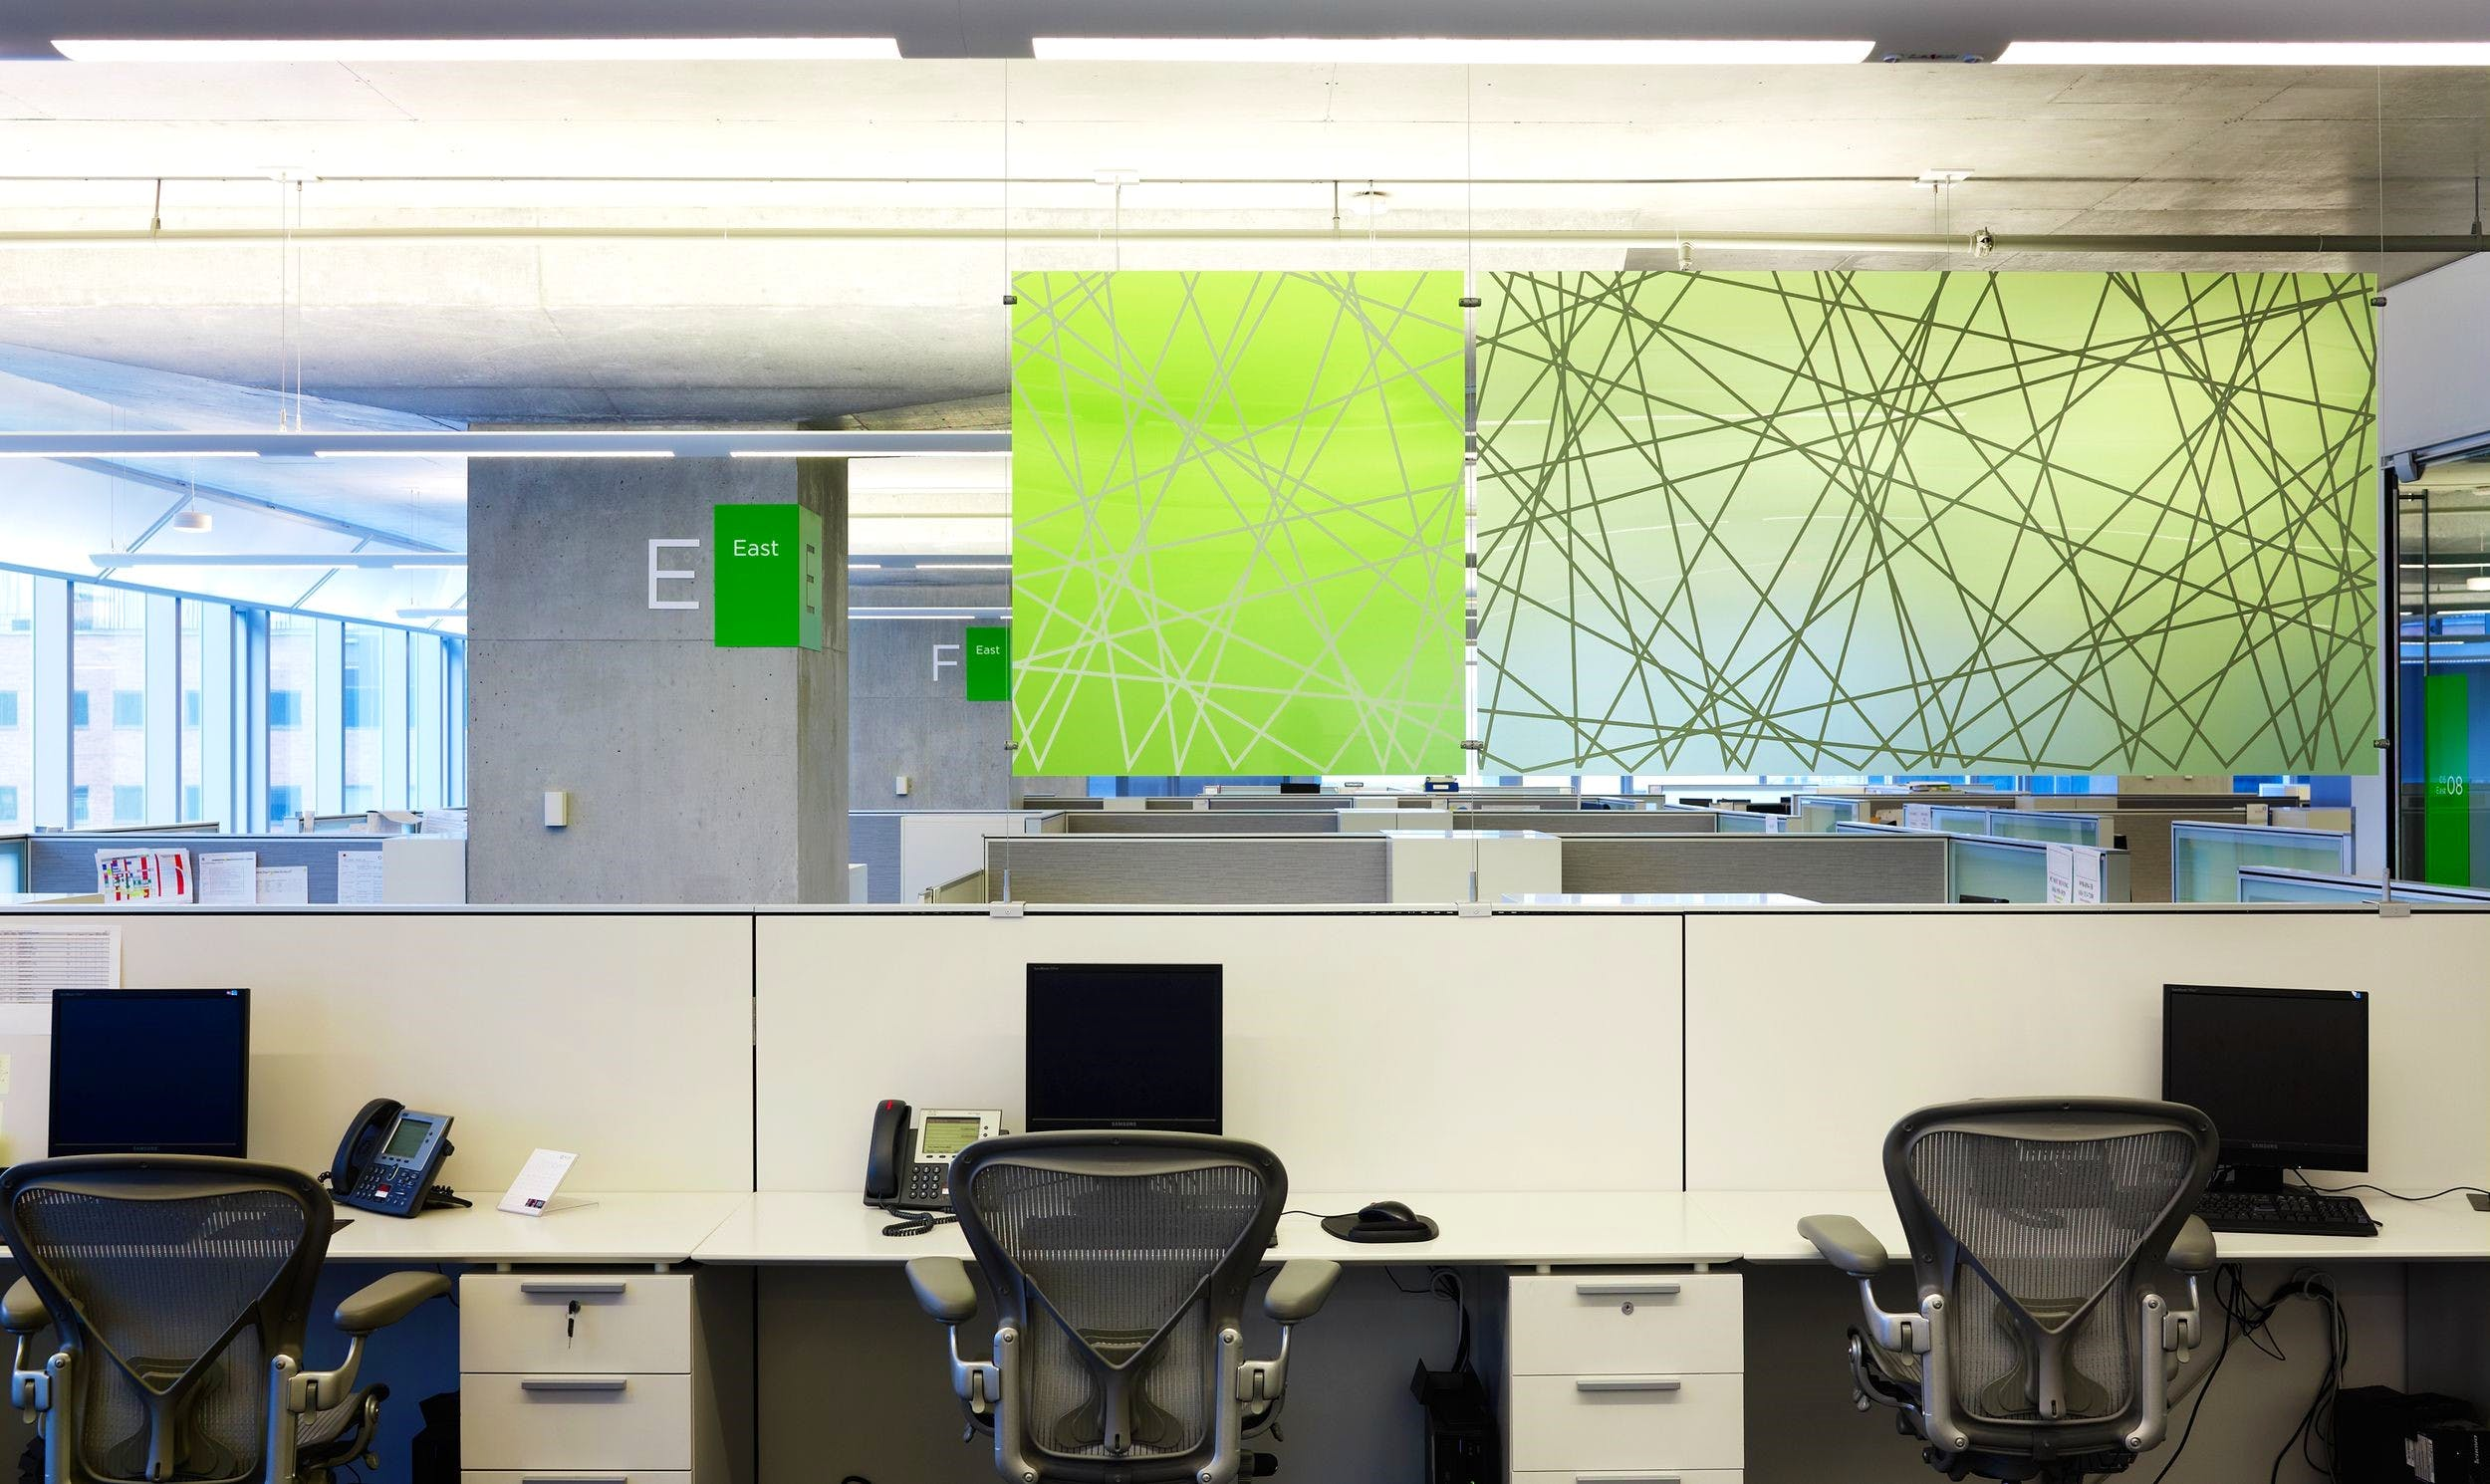 Graphic design changes how we interact with our environment